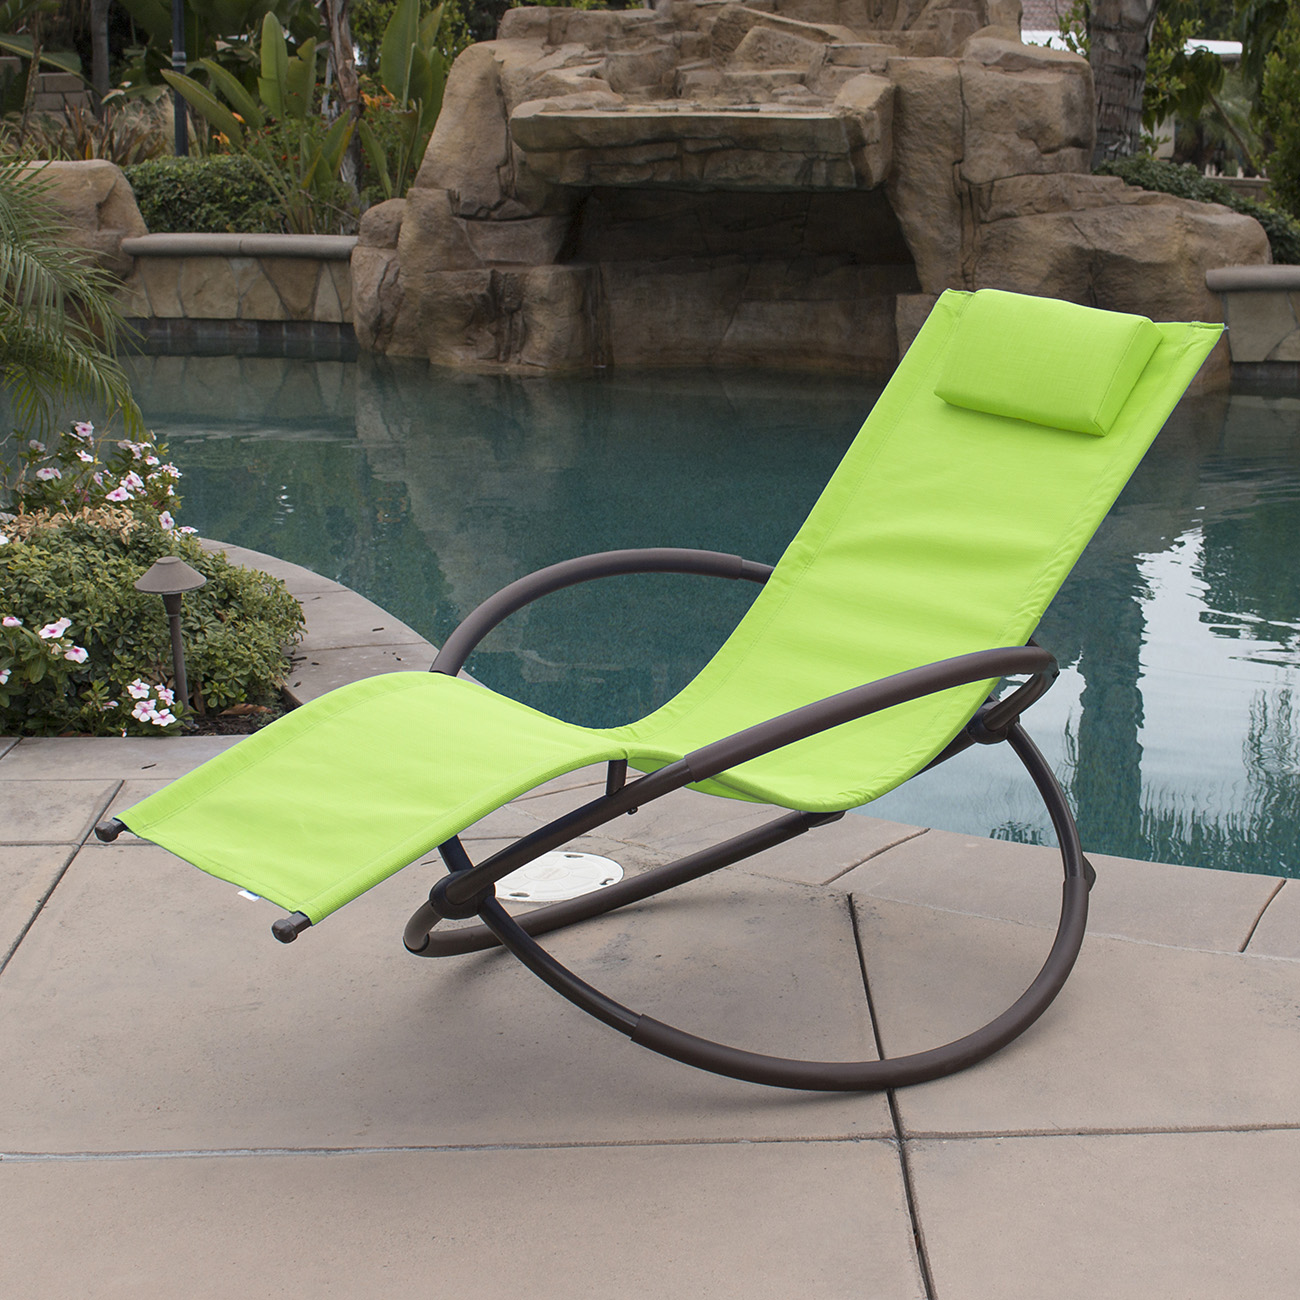 7 Color Orbital Zero Anti Gravity Lounge Chair Beach Pool Patio Outdoor Foldable